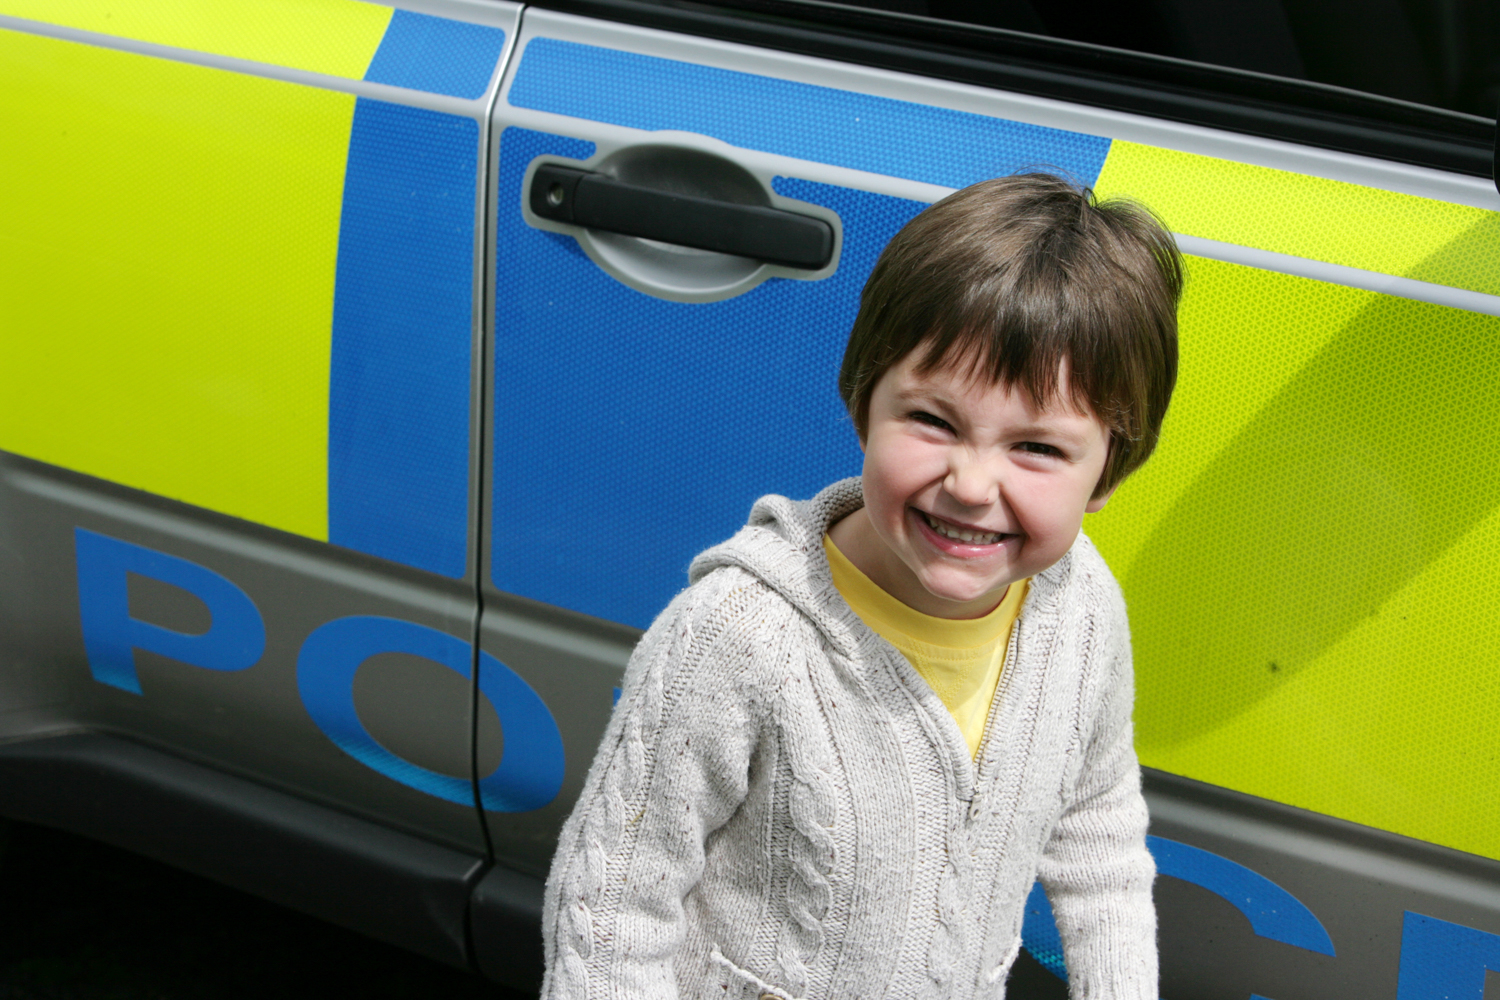 PICTORIAL_BERWICK_bookstart-heatherslaw-funded-day-out-educational-extended-services-lorna-chappell-organised-fire-police-9889.jpg